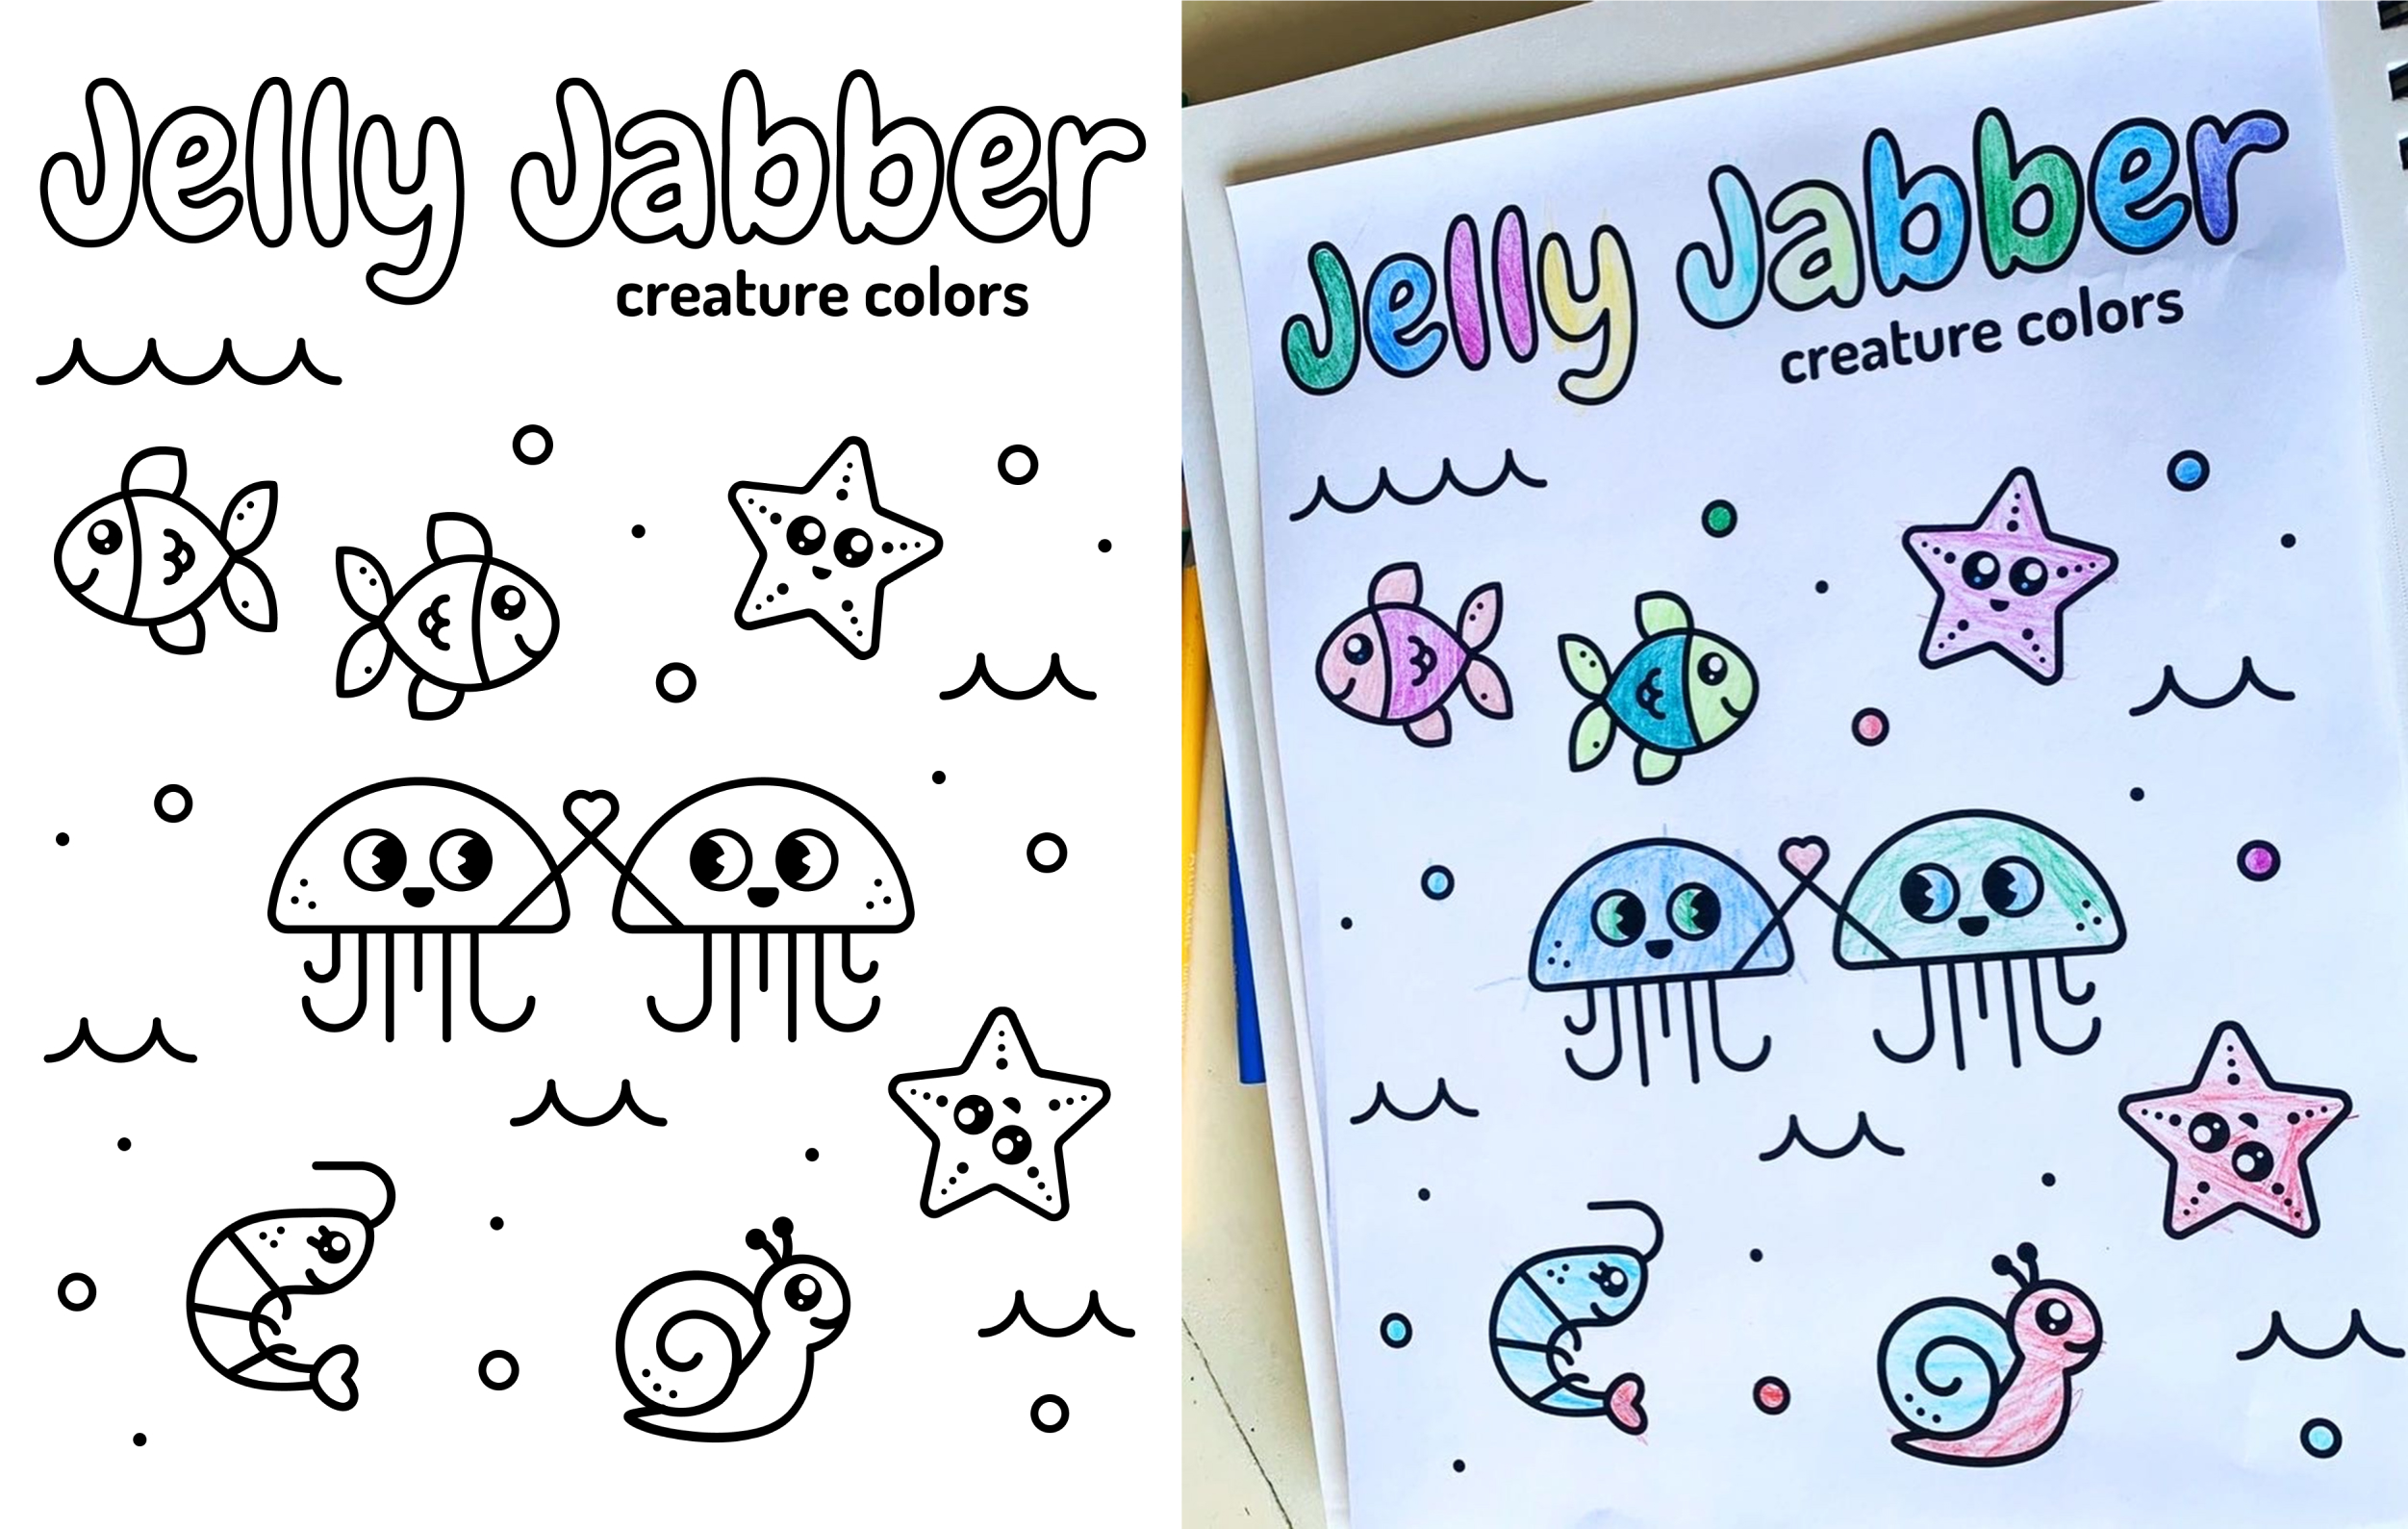 Jelly Jabber coloring sheet